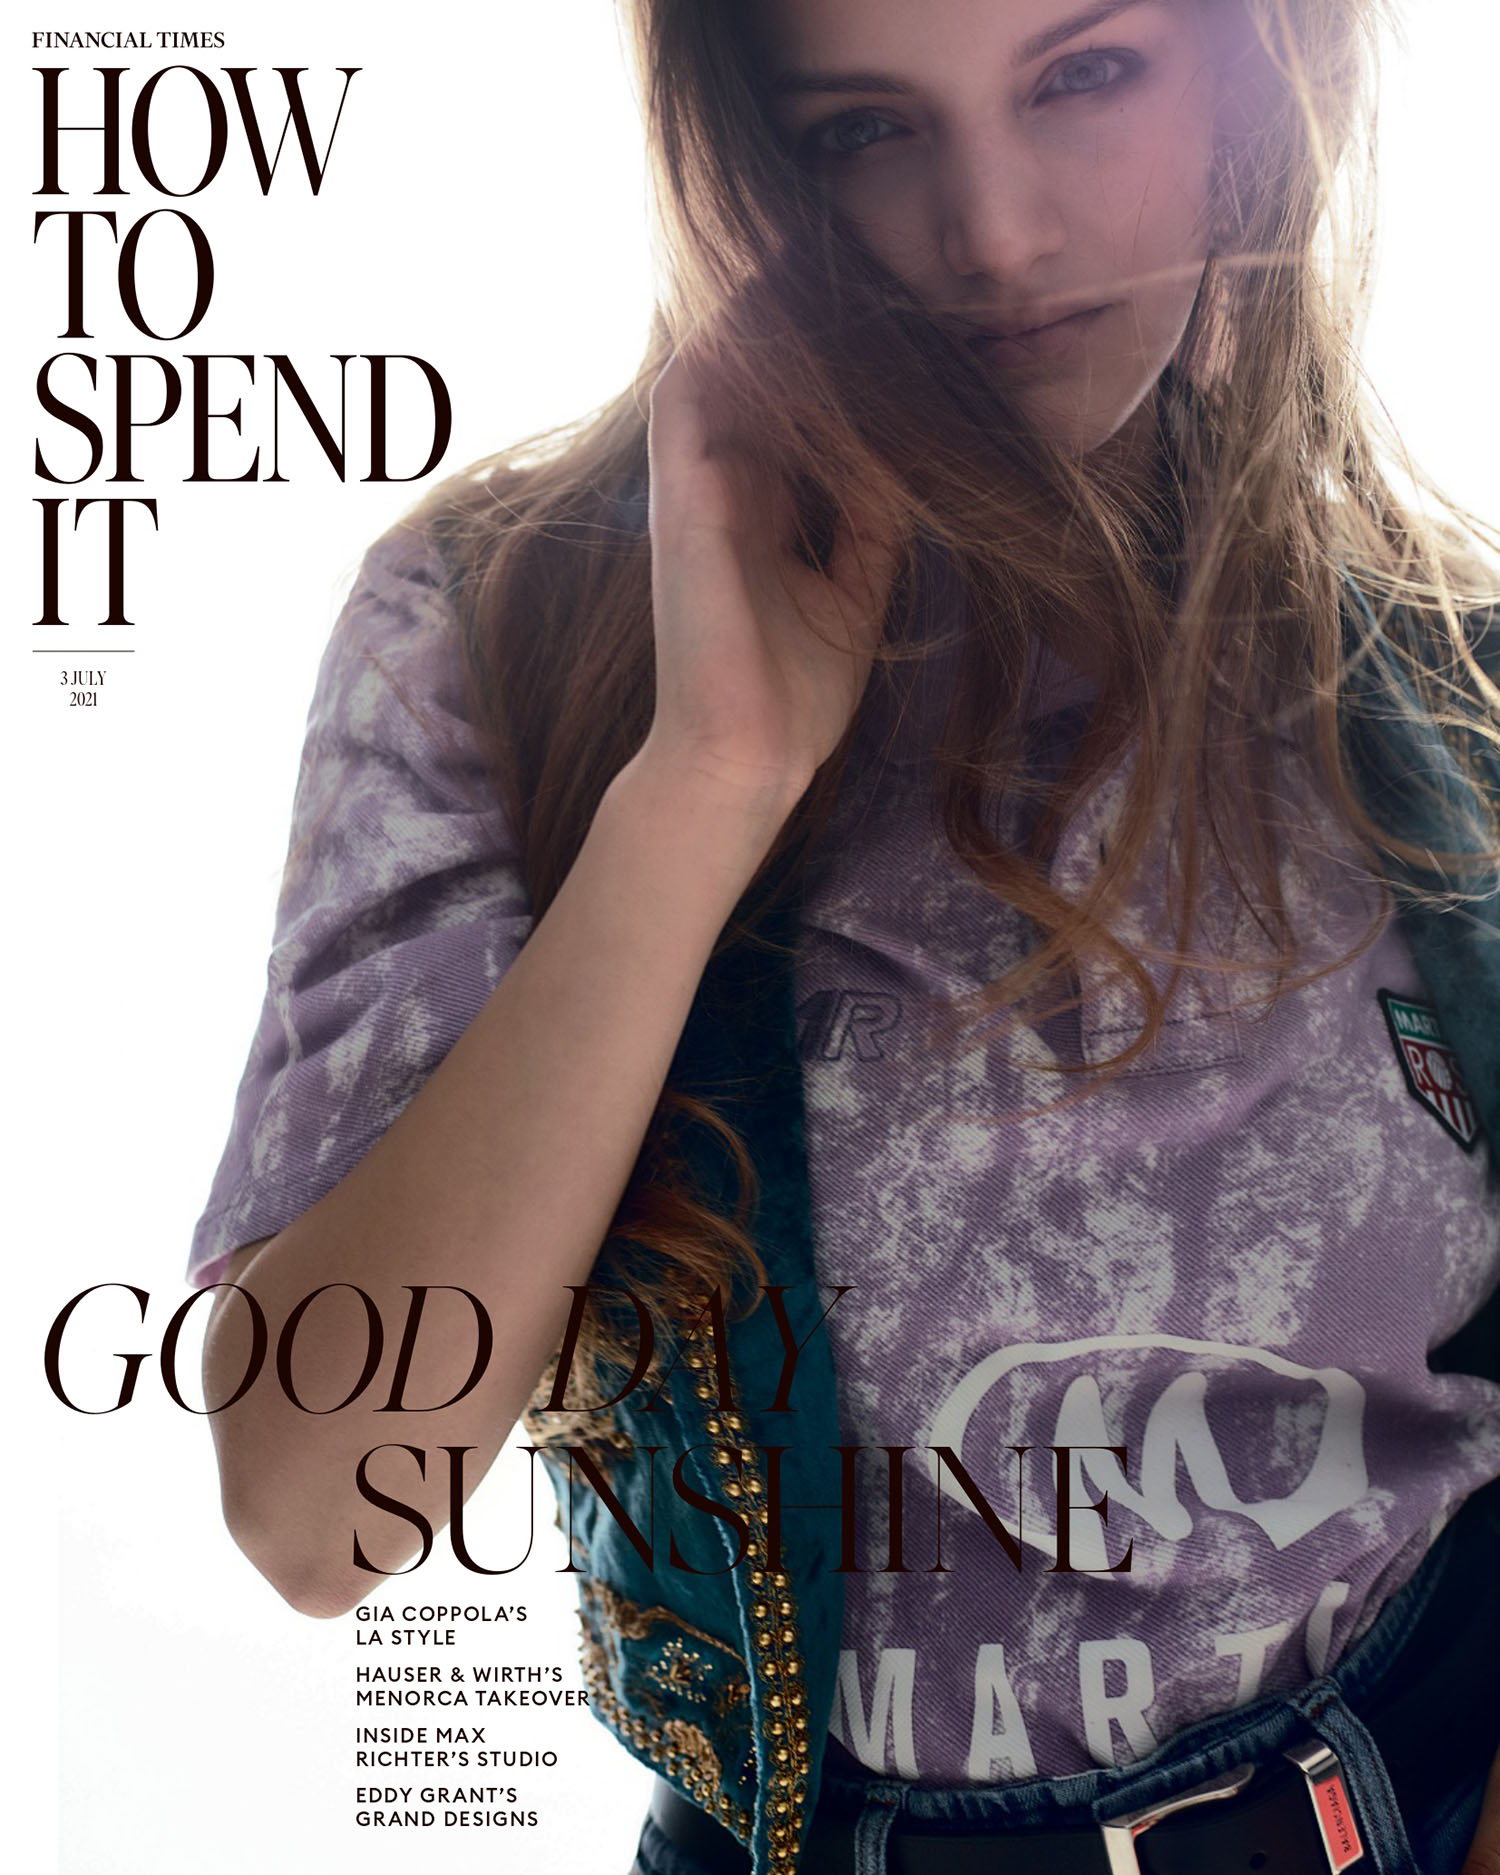 Misty Kyd covers How To Spend It July 3rd, 2021 by Sean and Seng